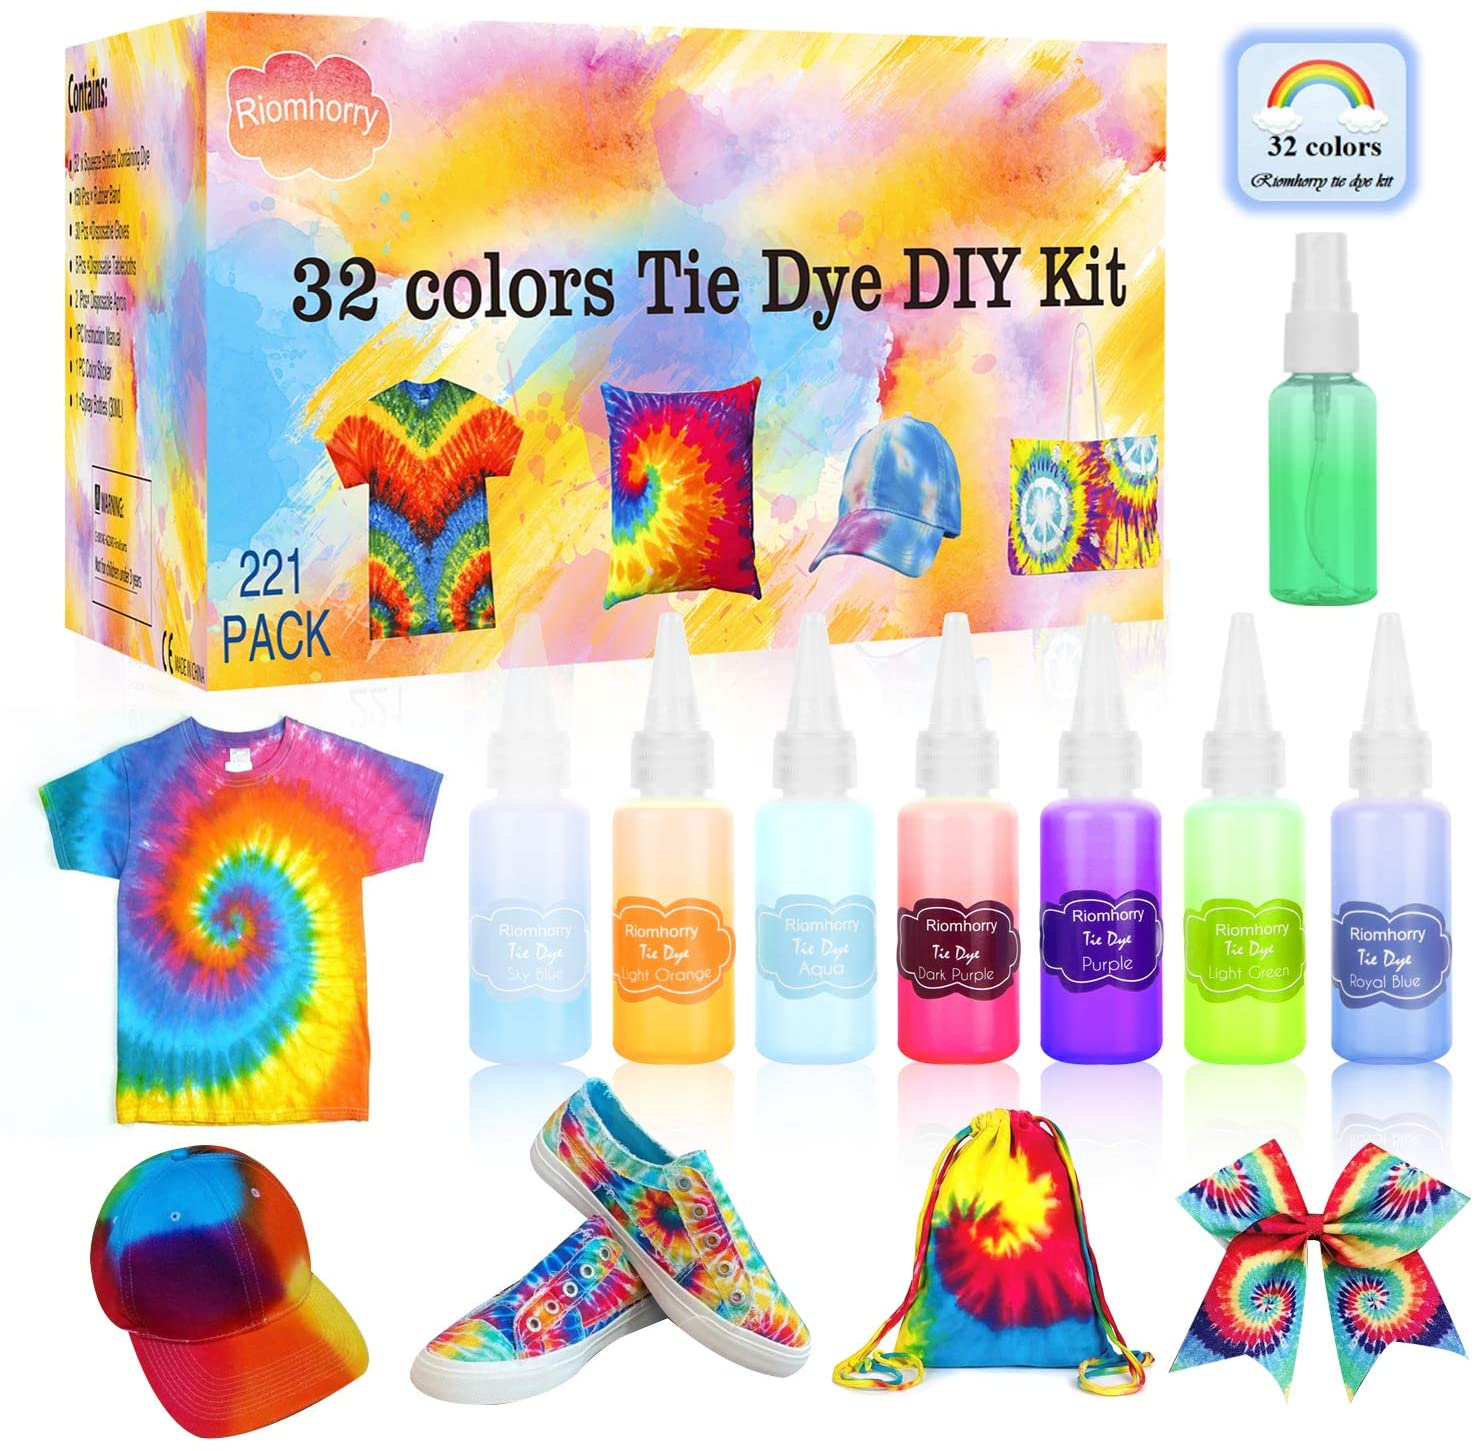 Riomhorry Tie Dye Kit, 32 Colors Tie Dye Party Kit for Kids, Women, Fabric Dye with Gloves, Aprons, Rubber Bands and Plastic Table Covers